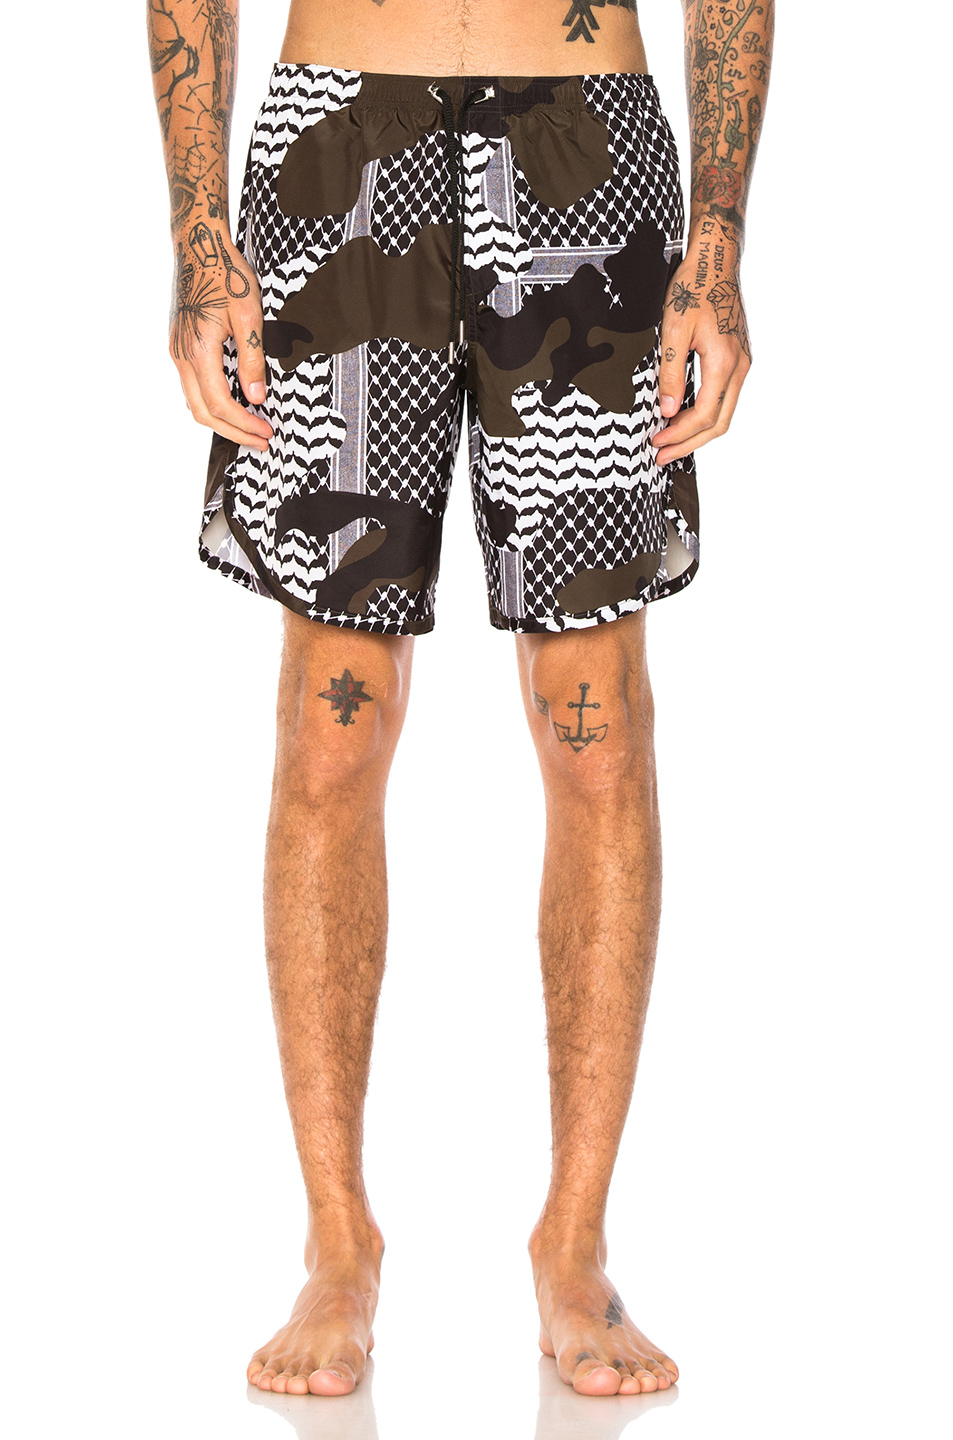 Neil Barrett Camouflage Swim Trunks in Abstract,Black,Green,White